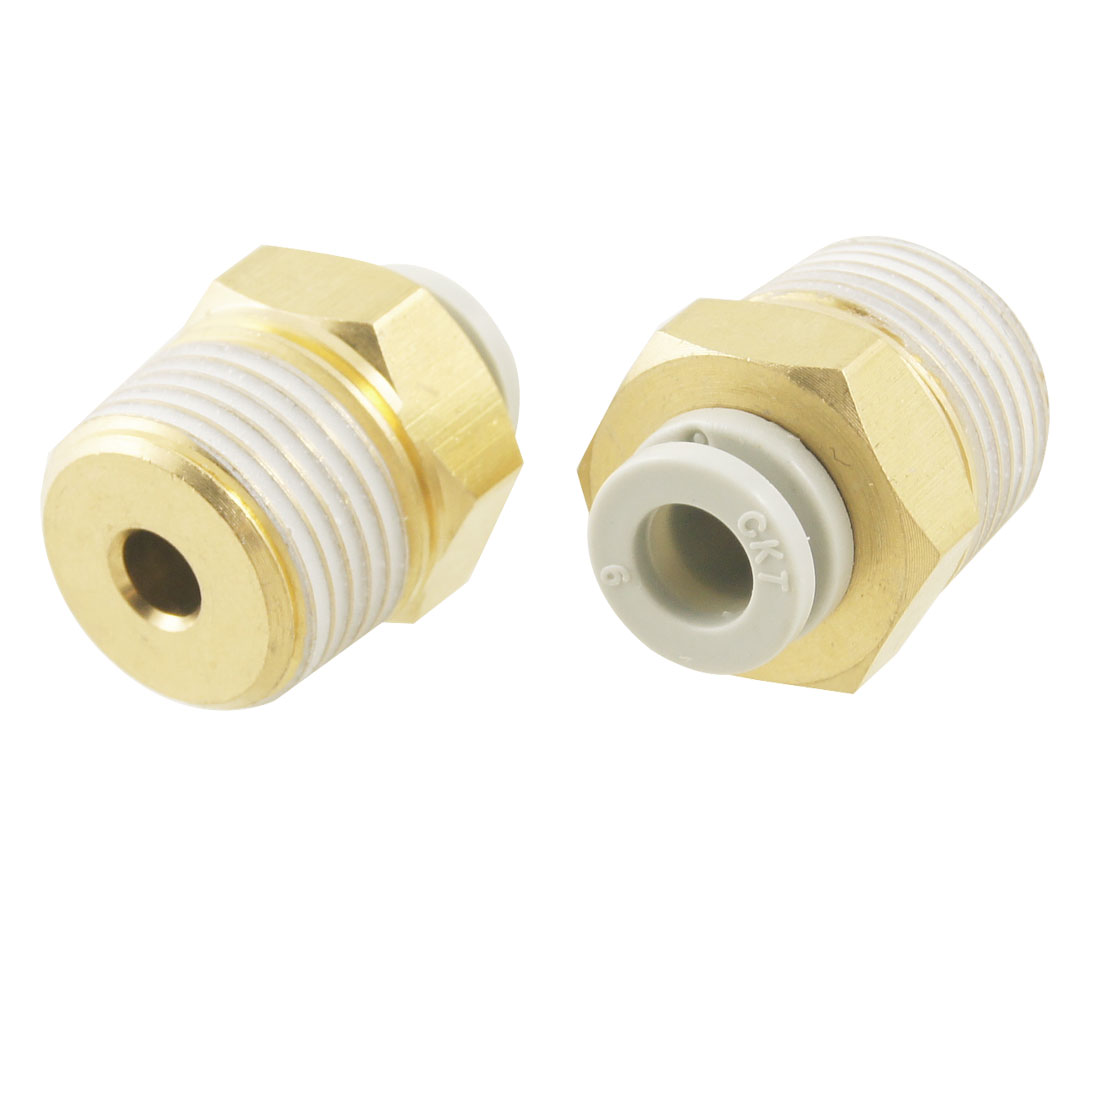 "10 Pcs Push in to Connect Pneumatic Straight Fitting 3/8"" PT x 15/64"""